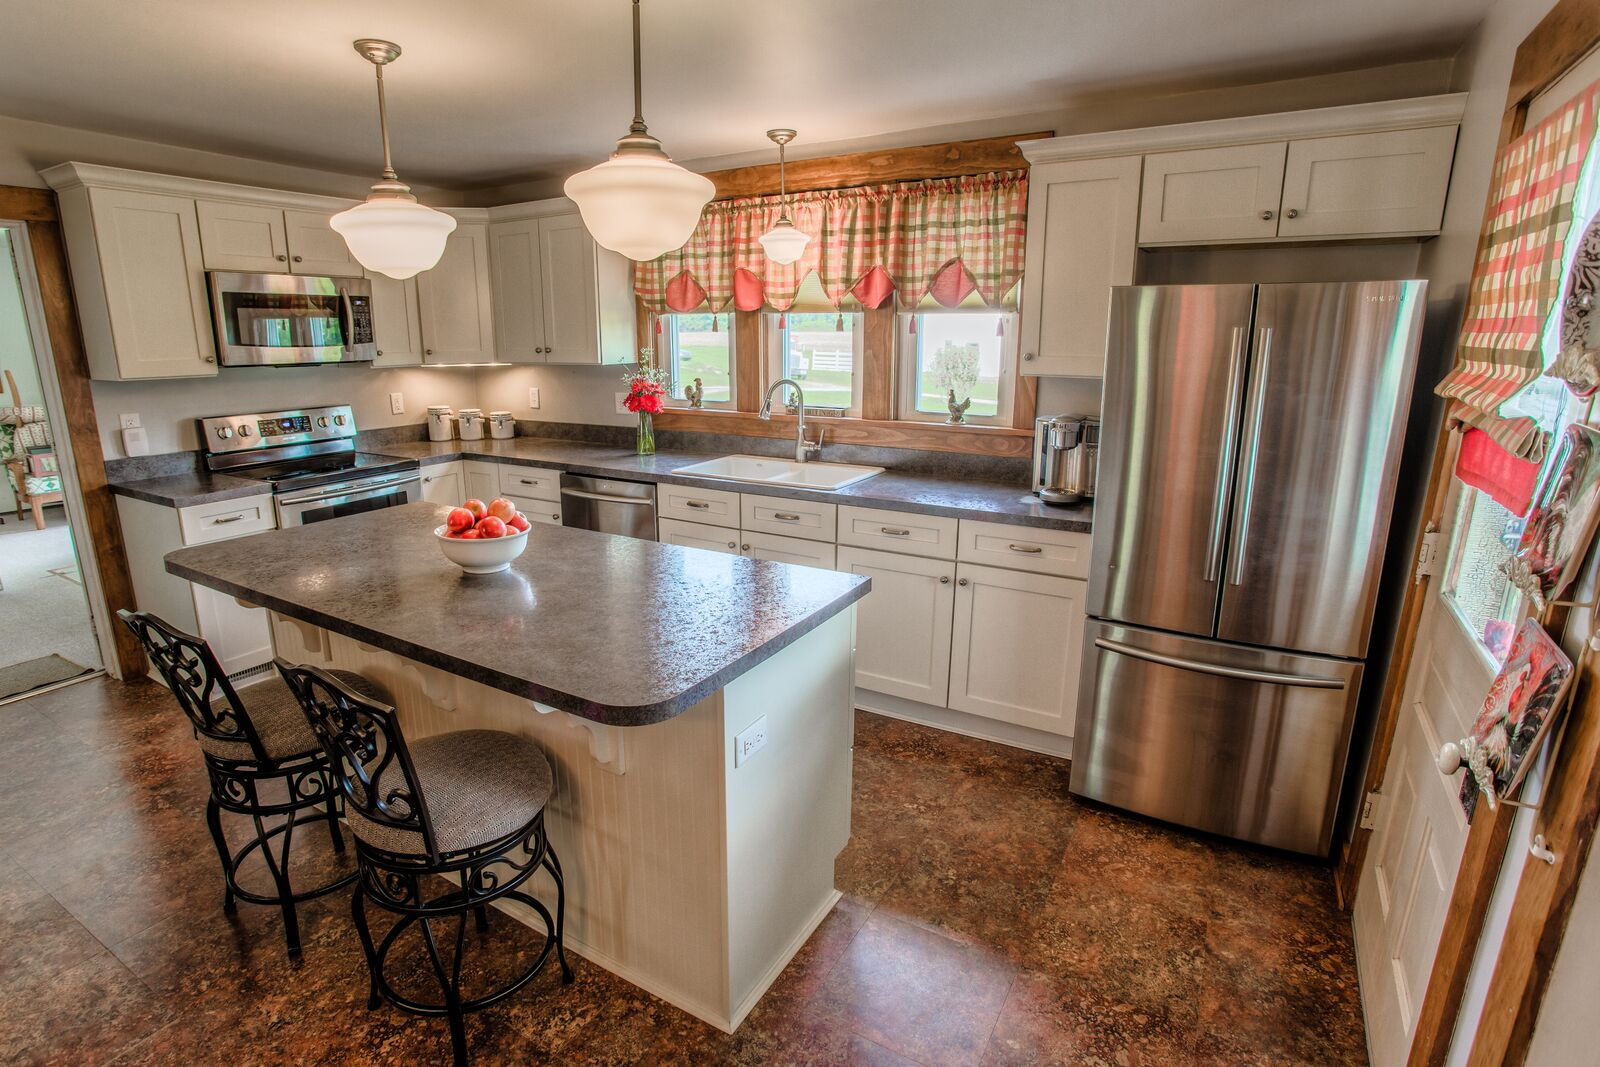 1900 Farmhouse Remodel Clarks Hill Farmhouse Kitchen Remodel Riverside Construction